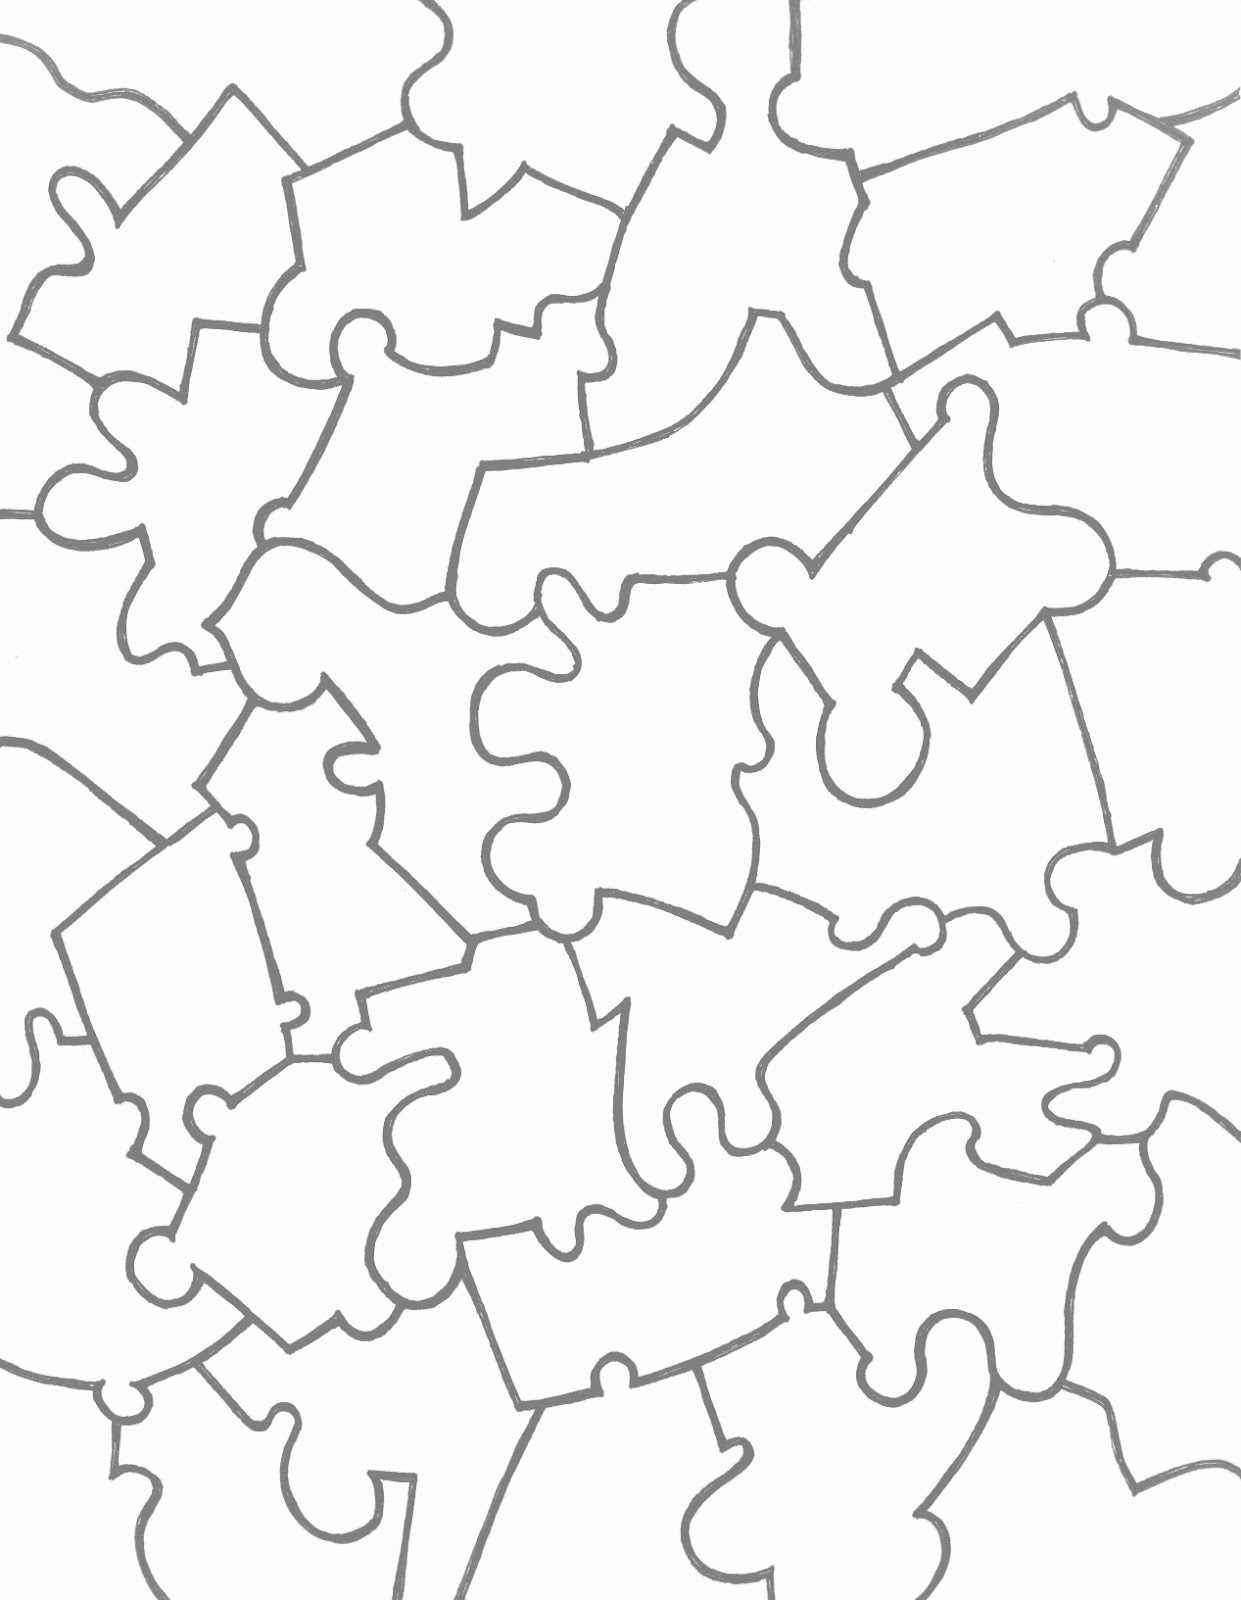 jigsaw puzzle template for word - paper jigsaw puzzle templates learn to coloring